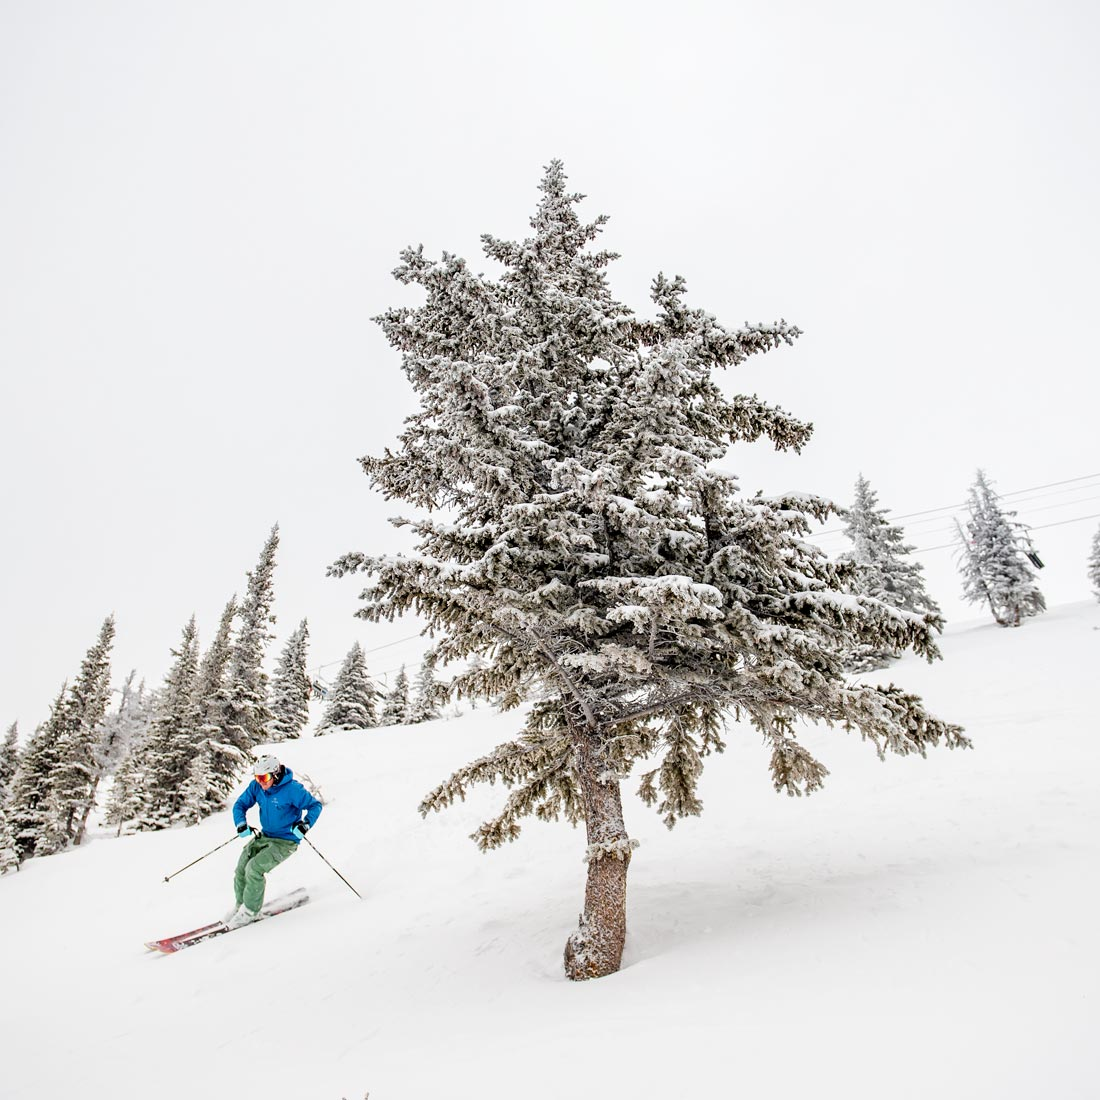 A skier links turns through the forested runs.